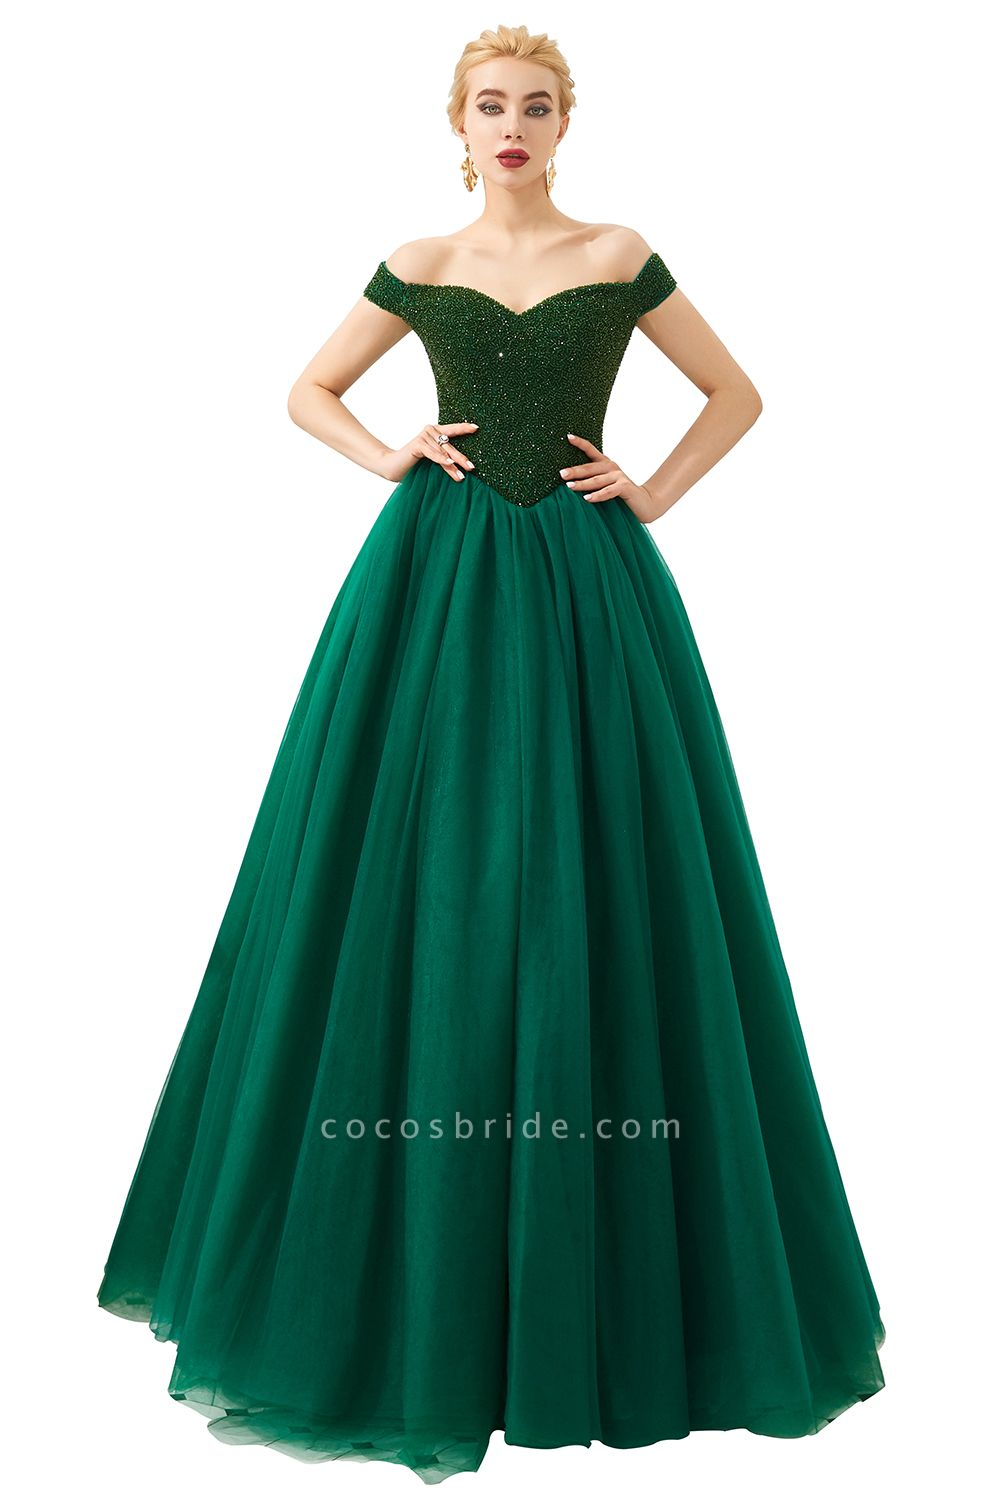 Glorious Off-the-shoulder Tulle A-line Prom Dress